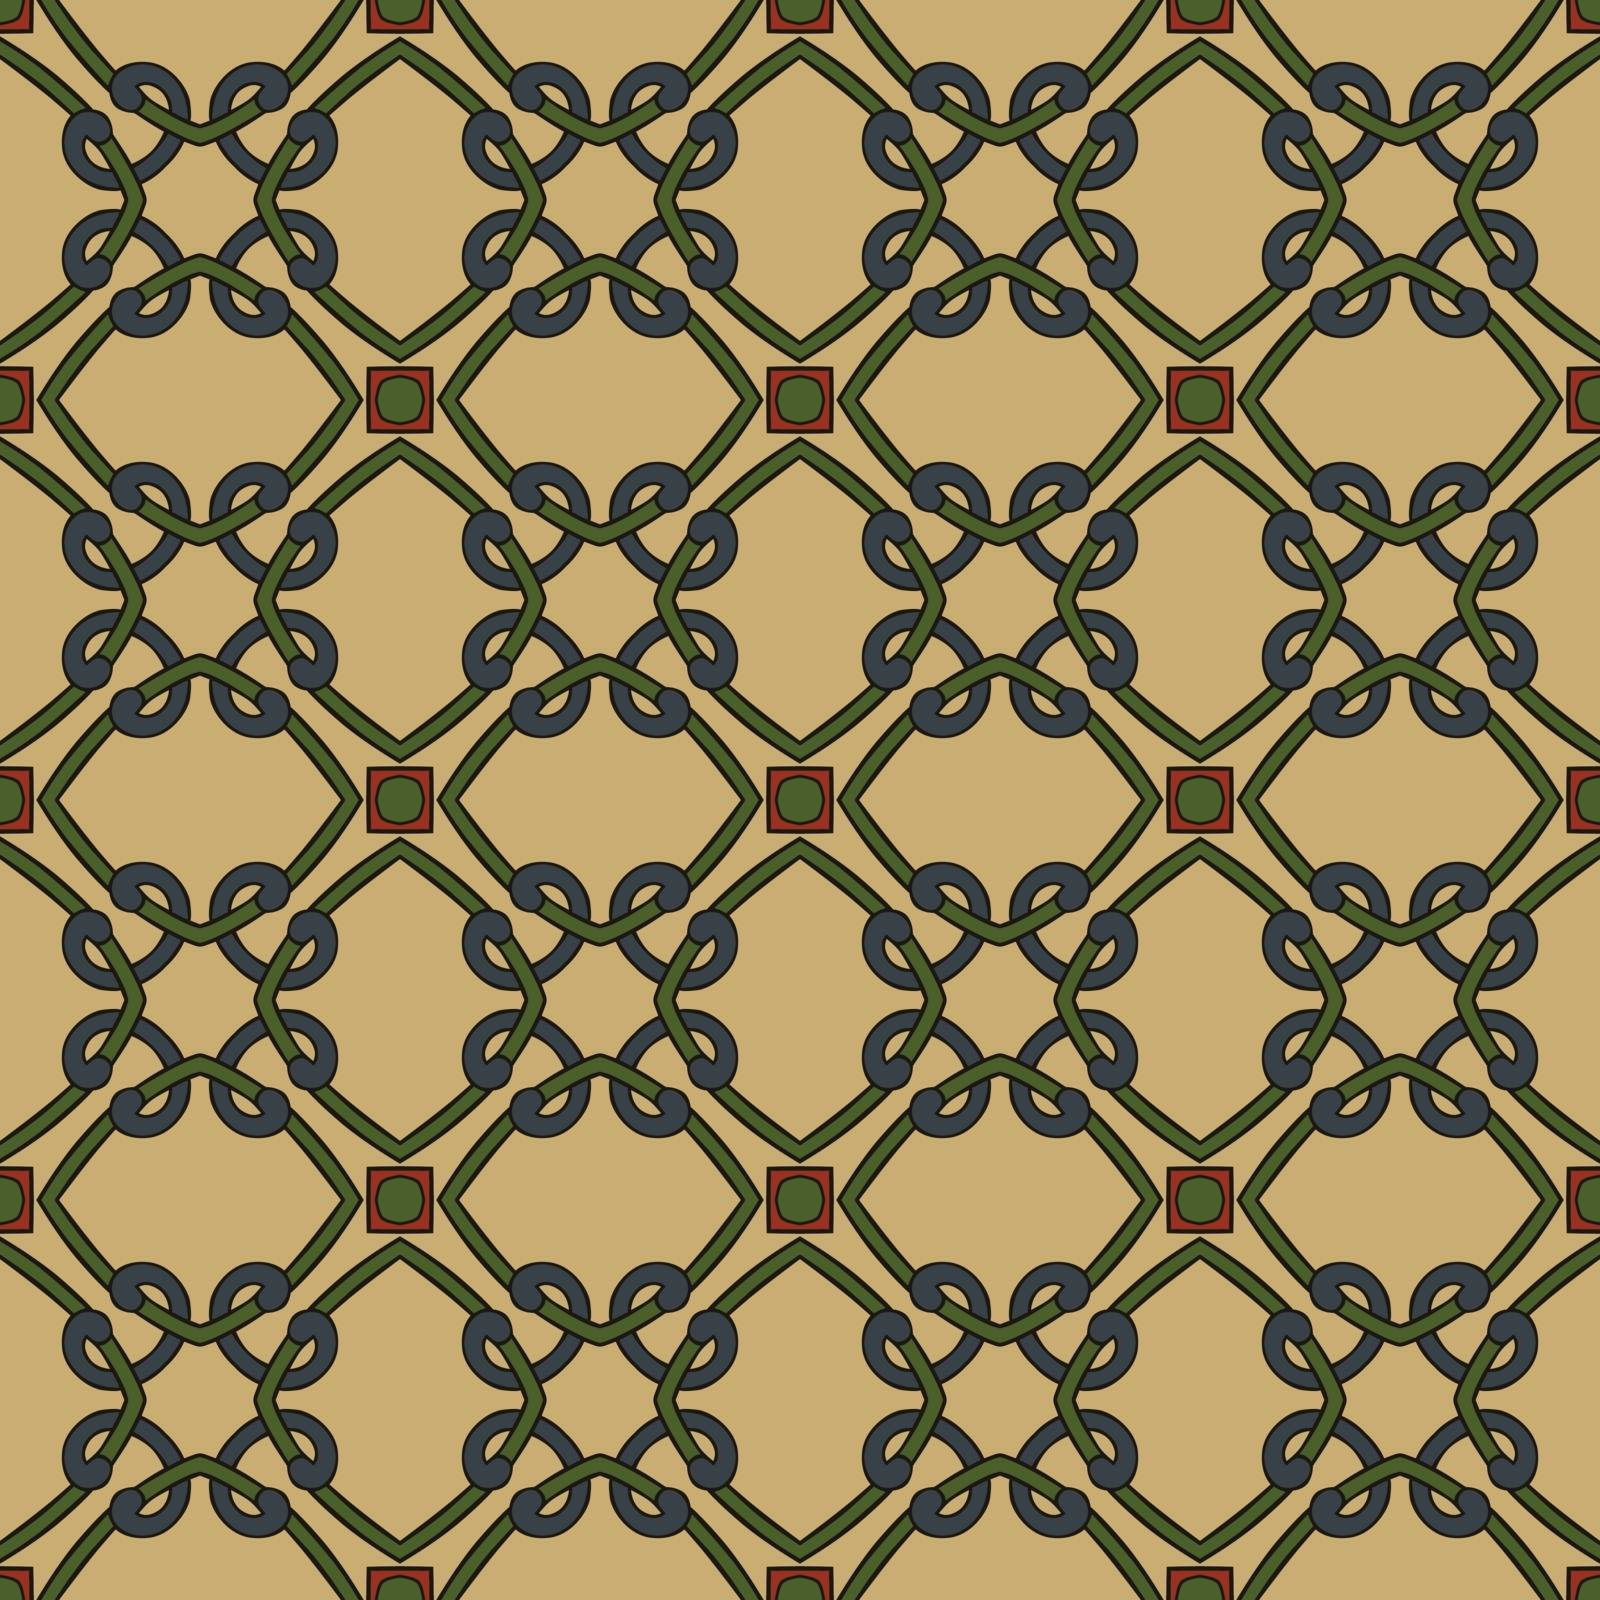 Seamless illustrated pattern made of abstract elements in beige, green, blue, red and black